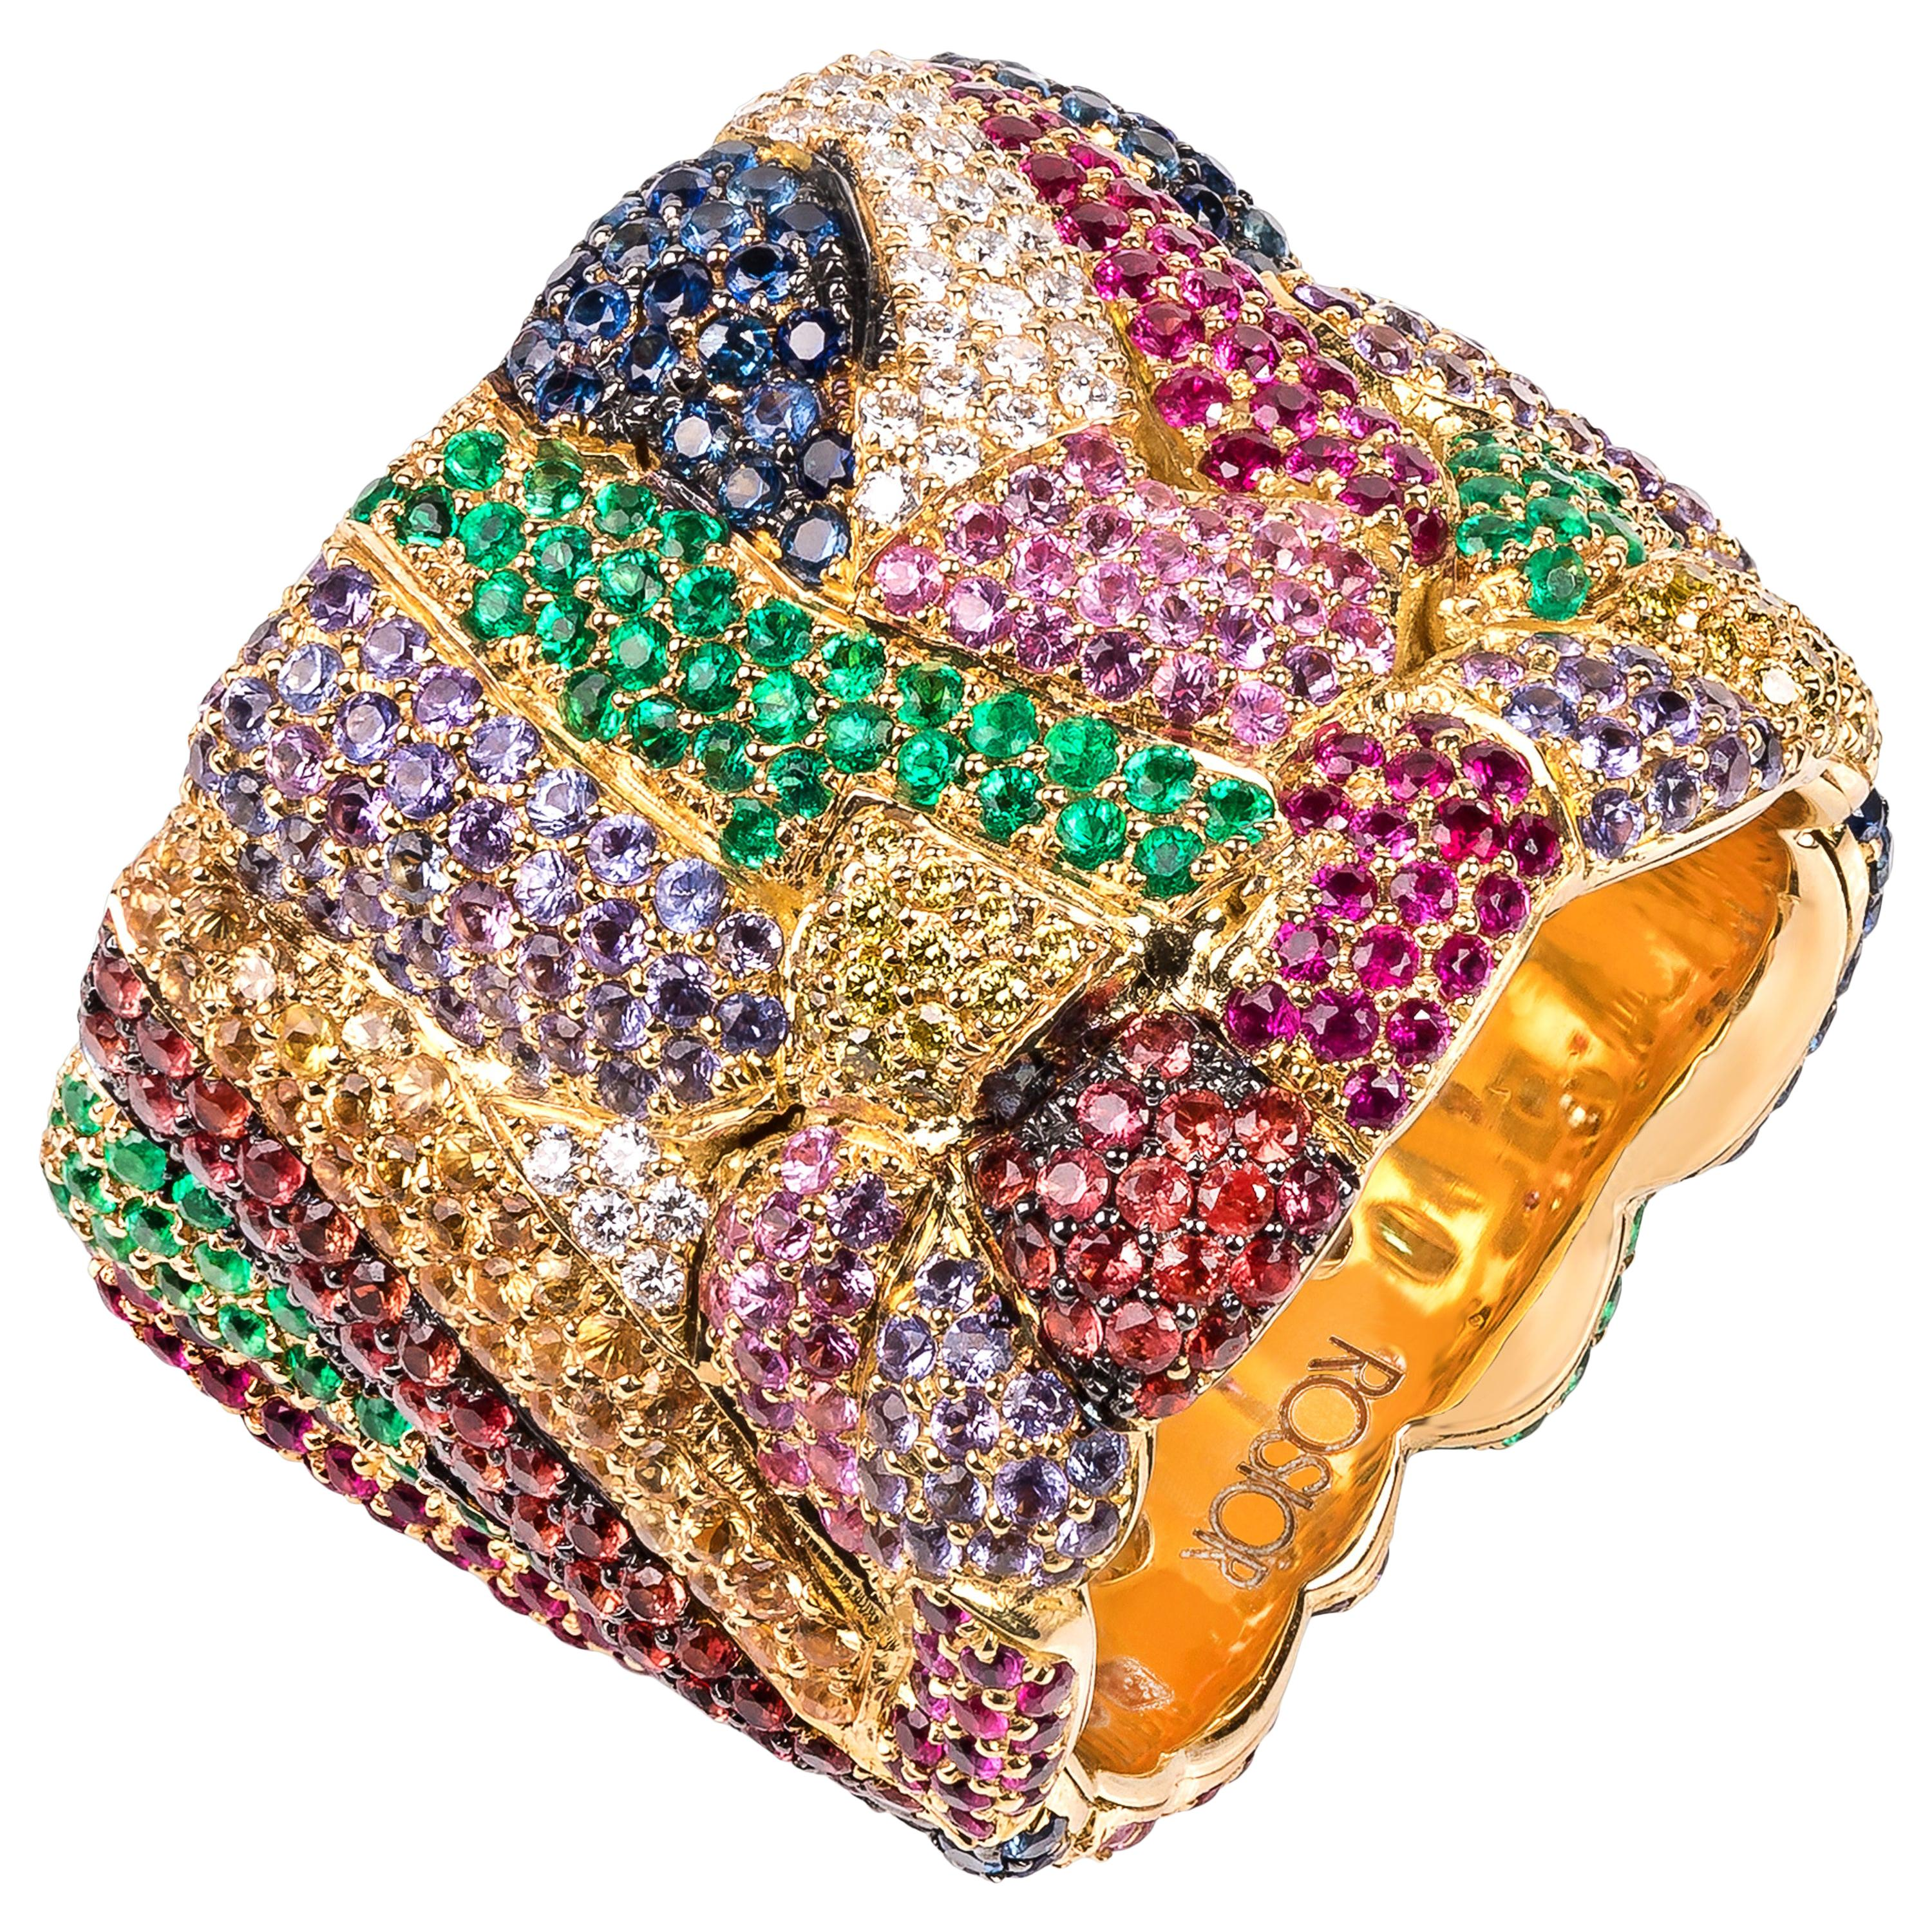 Rosior Contemporary Multi-Color Gemstone Cocktail Ring in Yellow Gold